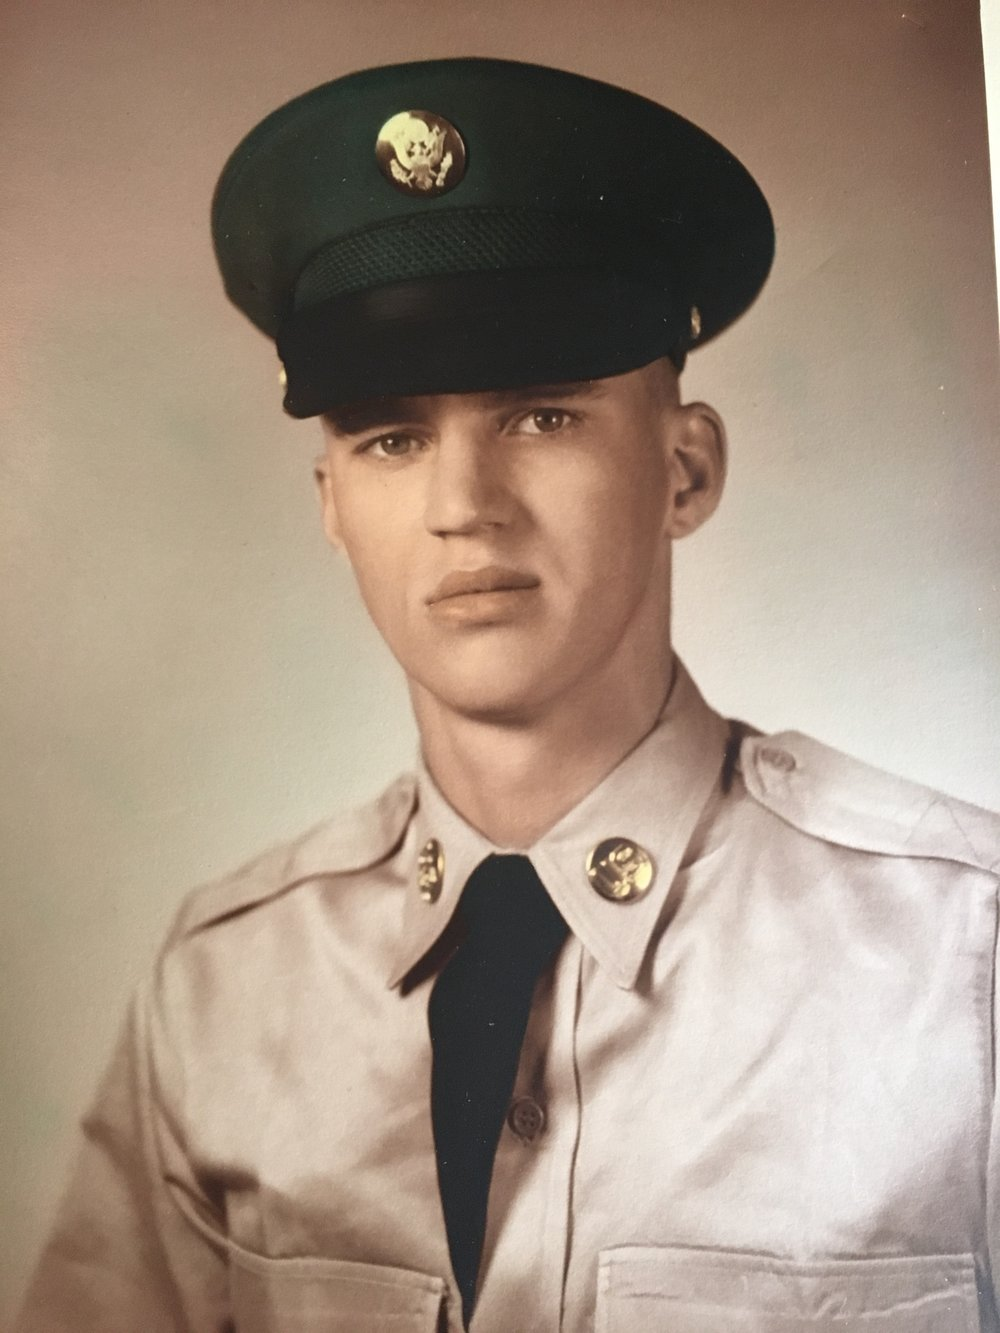 My brave Father, right before heading to Vietnam.